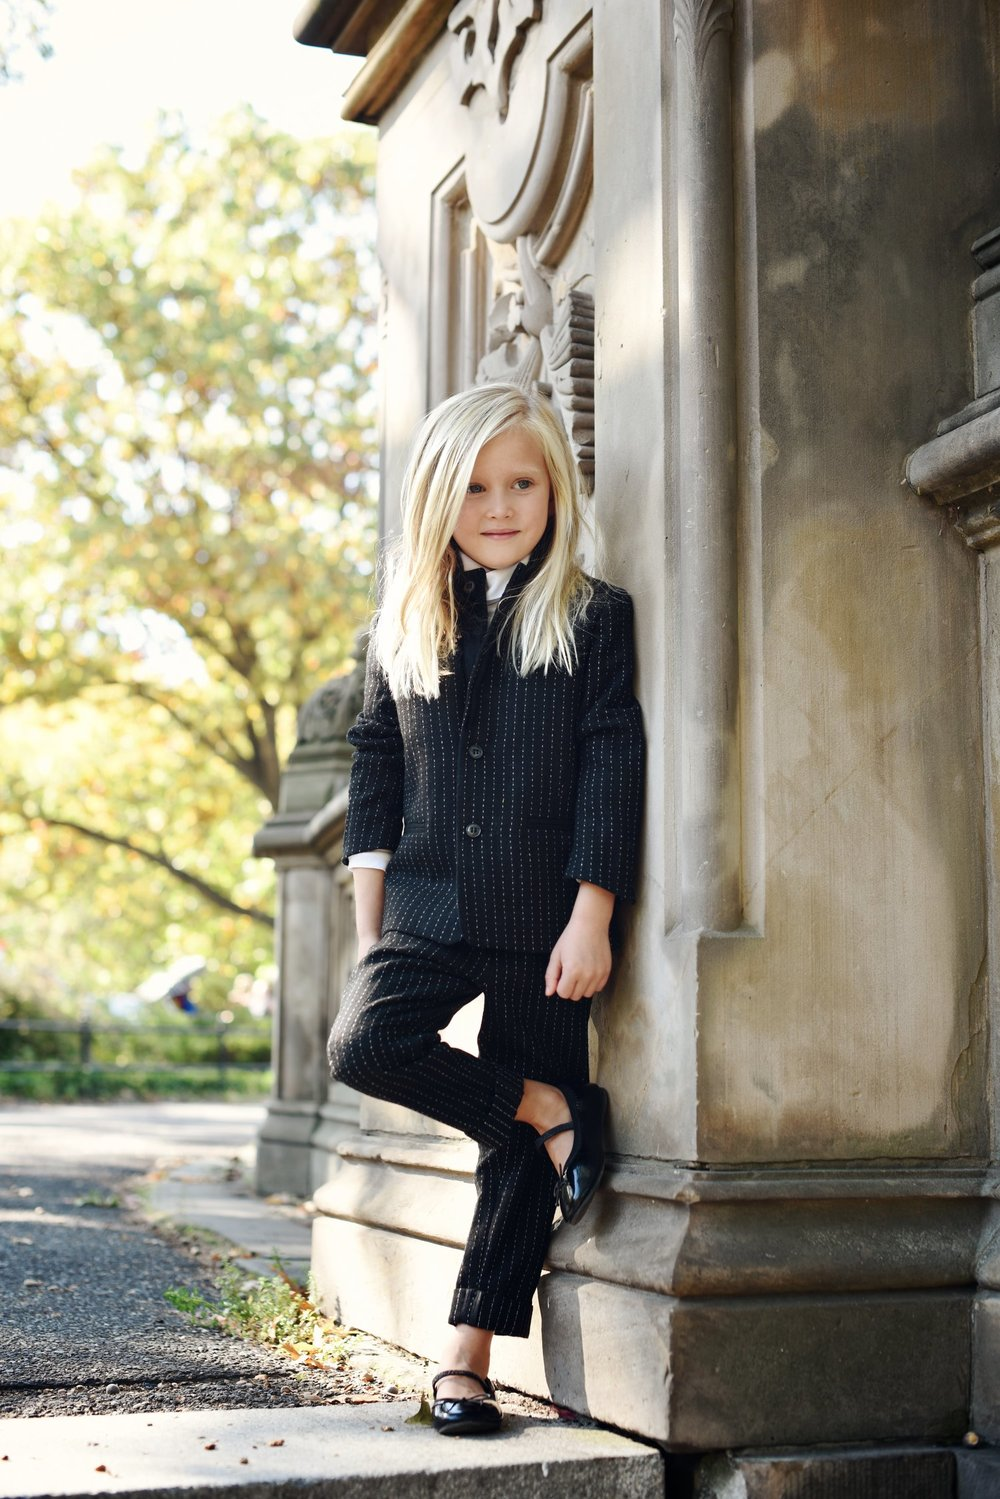 Enfant+Street+Style+by+Gina+Kim+Photography.jpeg